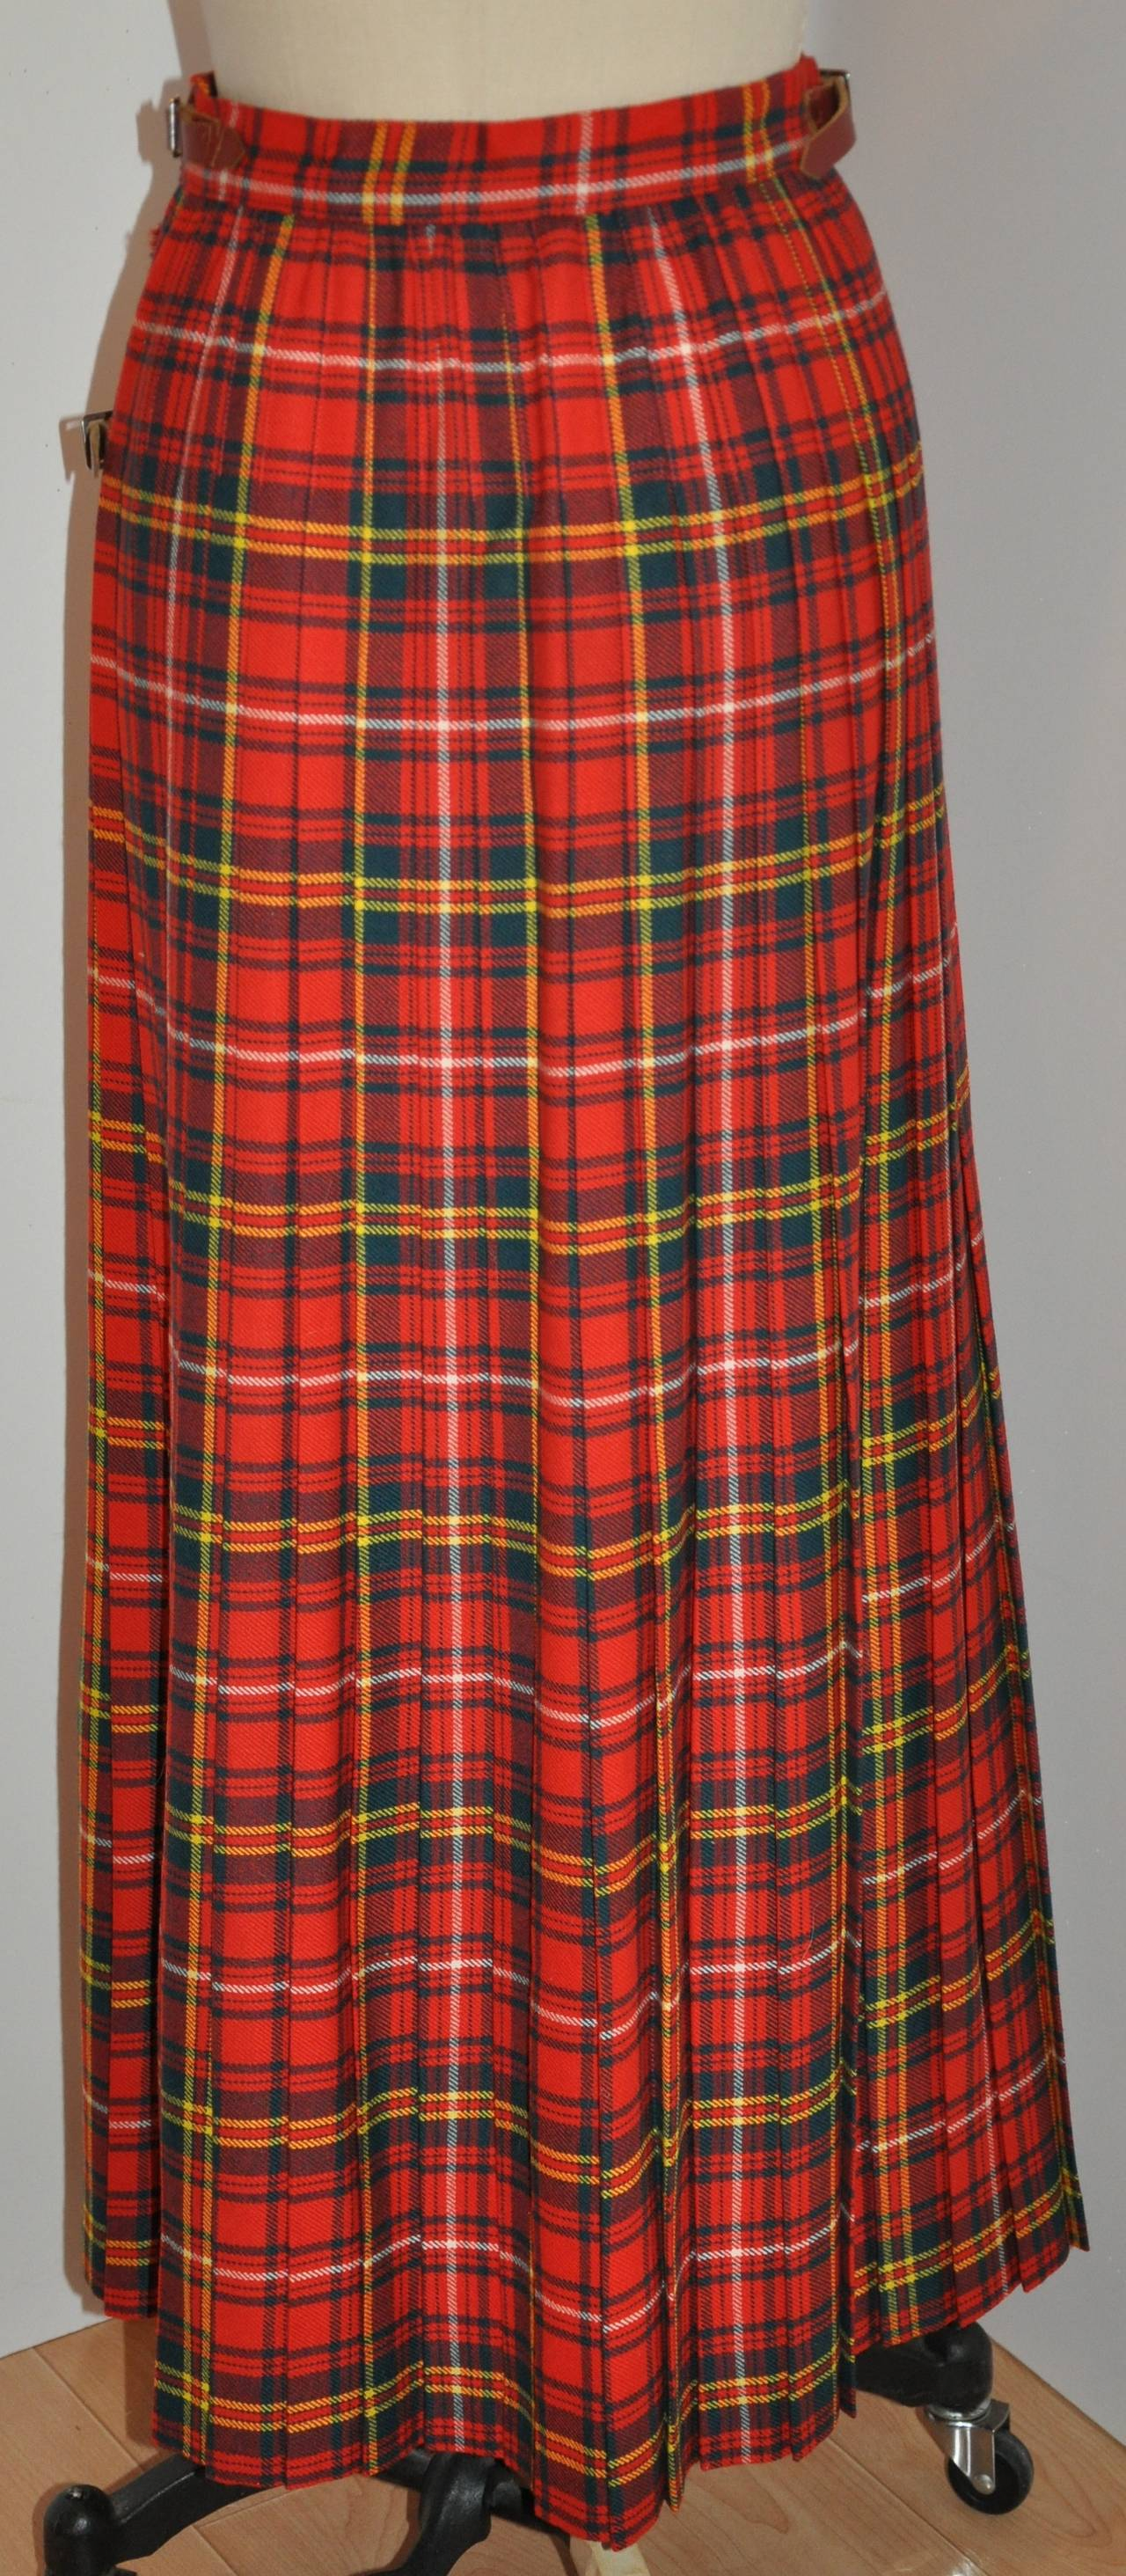 L.S. Ayres & Co Bold Red Plaid Maxi Wrap Skirt 2